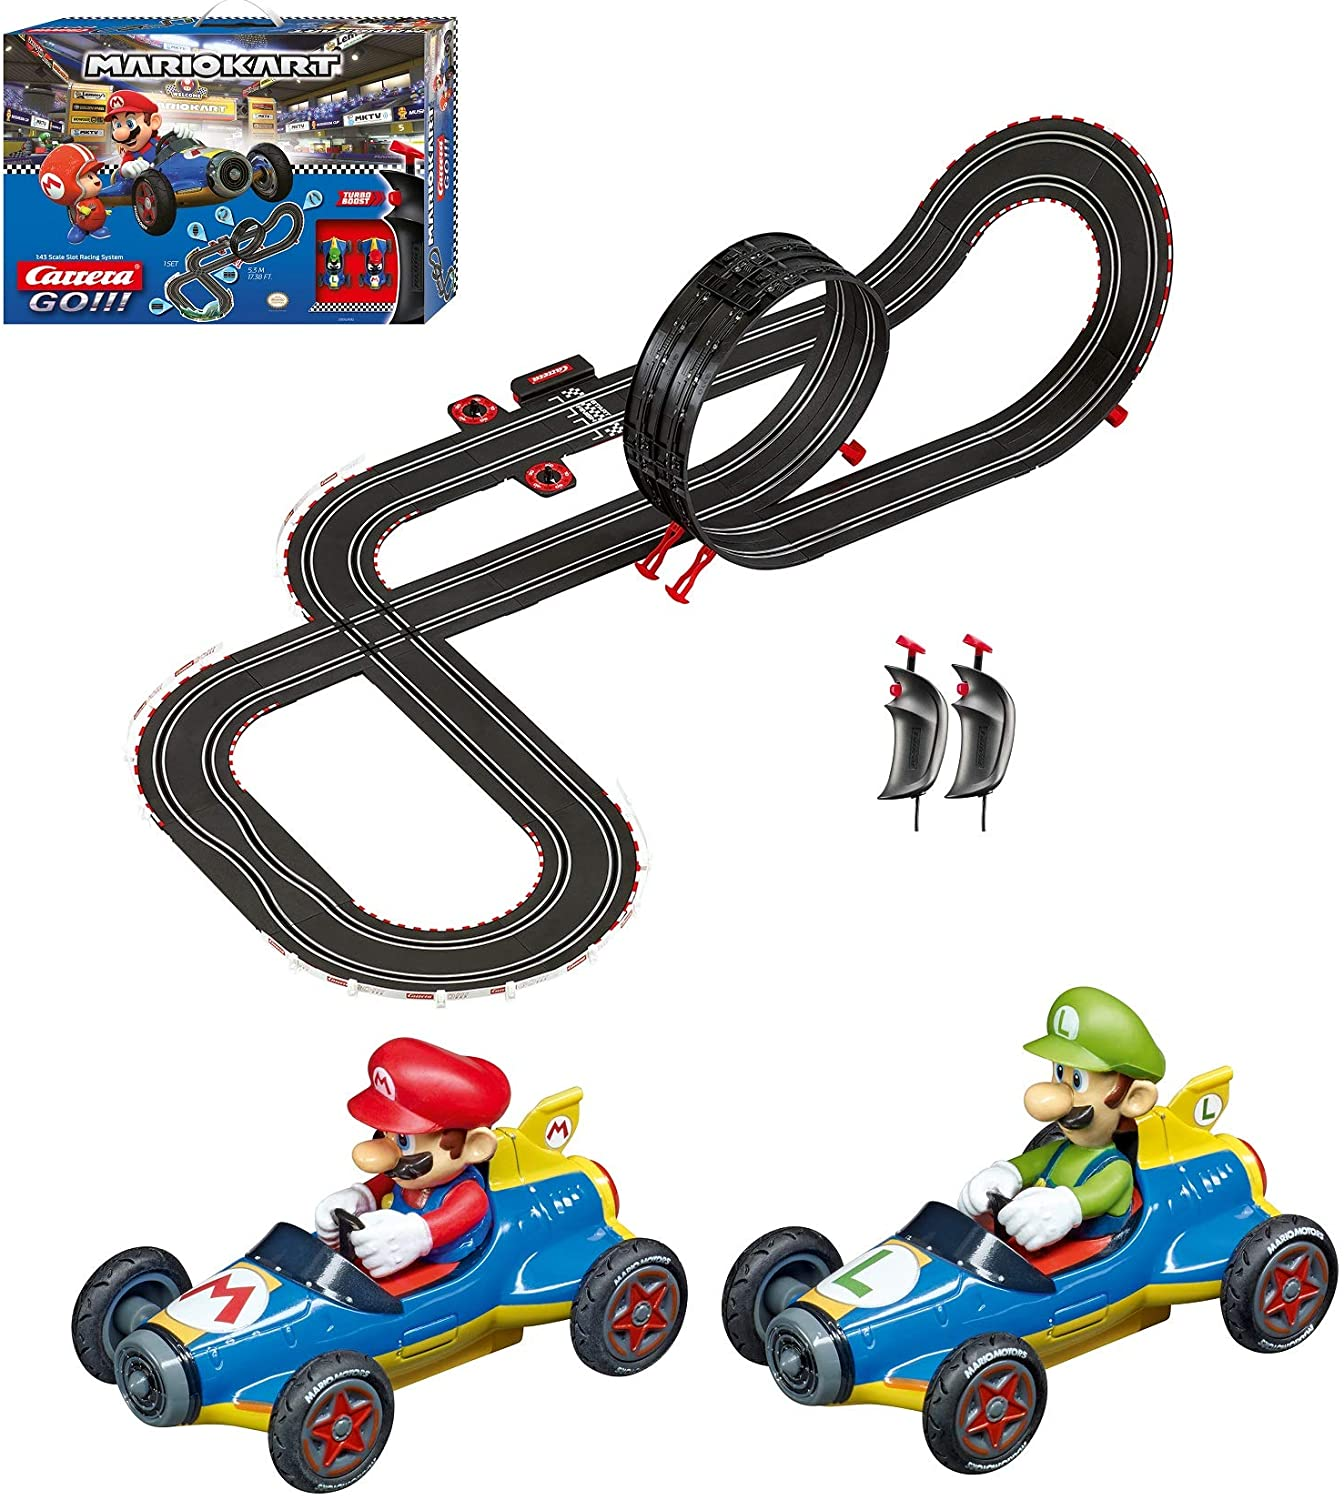 Carrera GO!!! 62492 Mario Kart Mach 8 Electric Powered Slot Car Racing Kids Toy Race Track Set Includes 2 Hand Controllers featuring Mario versus Luigi in 1:43 Scale